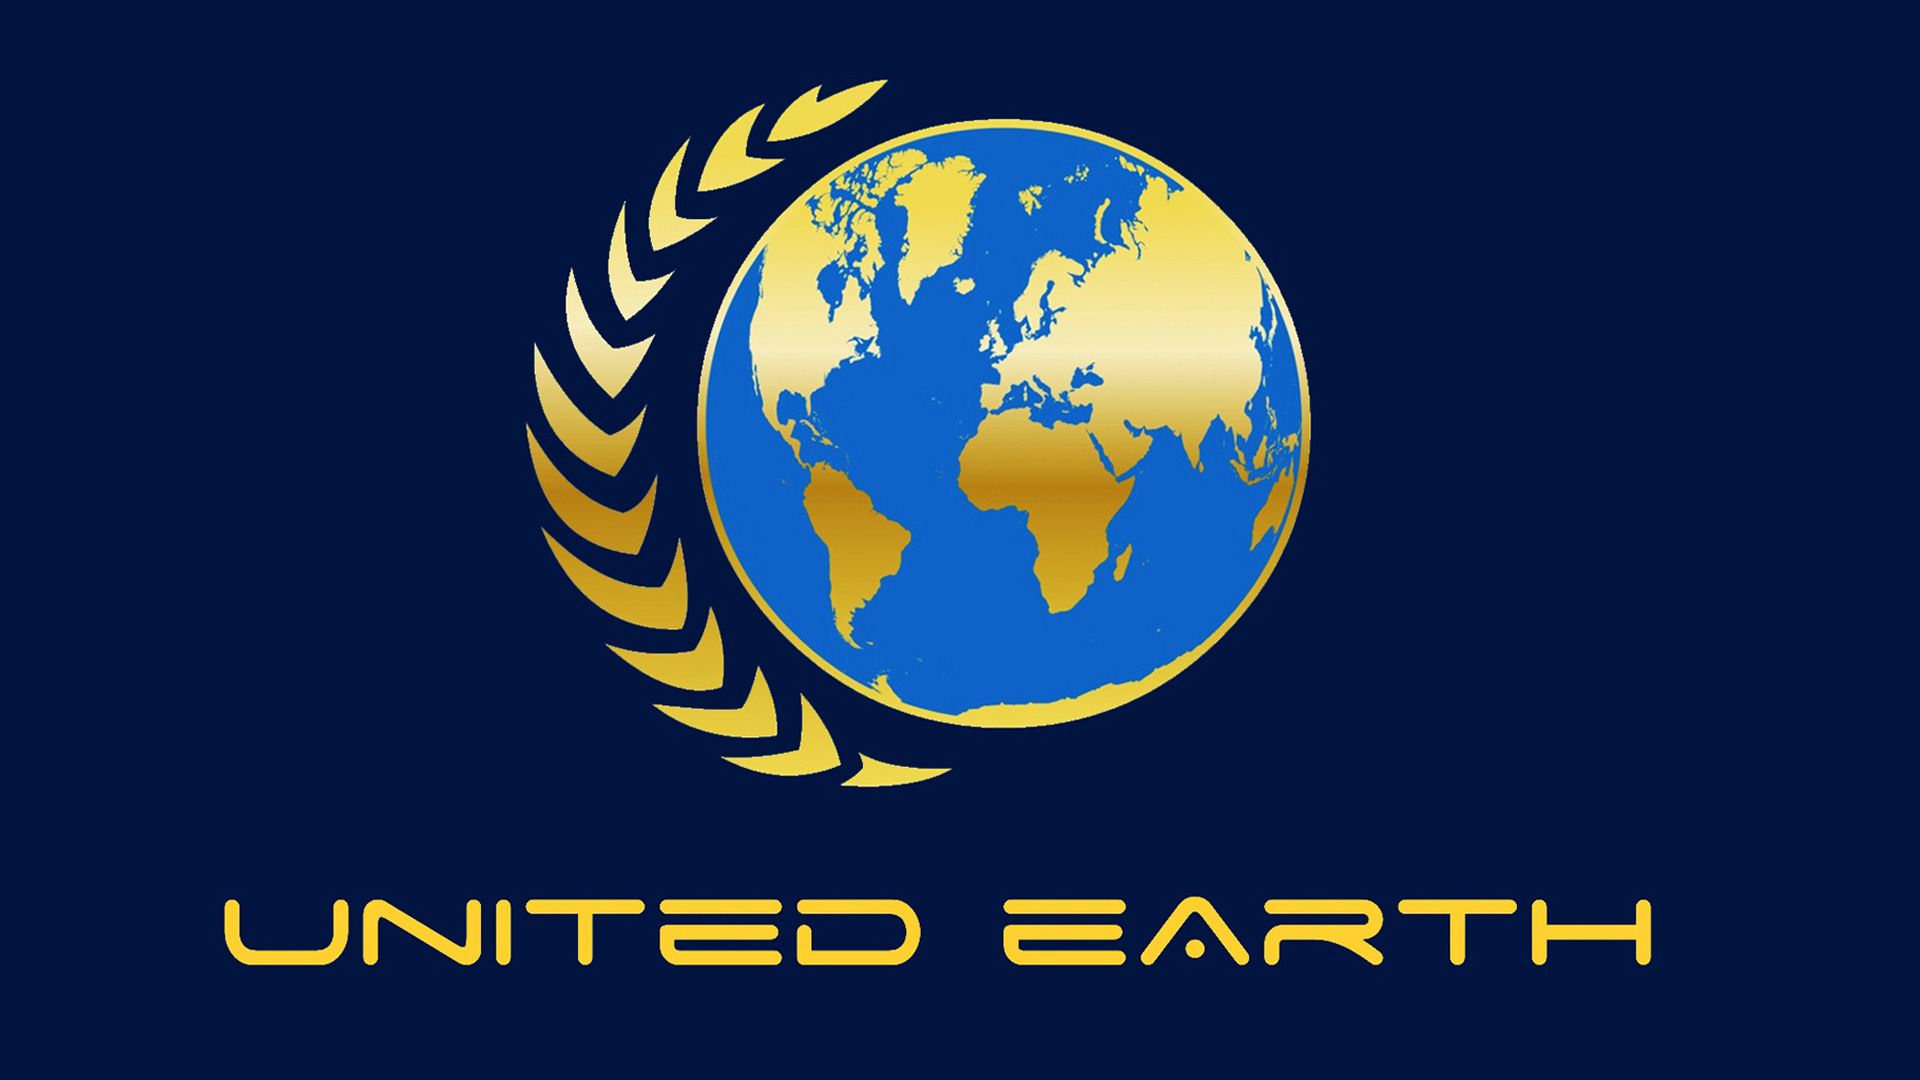 United Earth logo Wallpaper #990